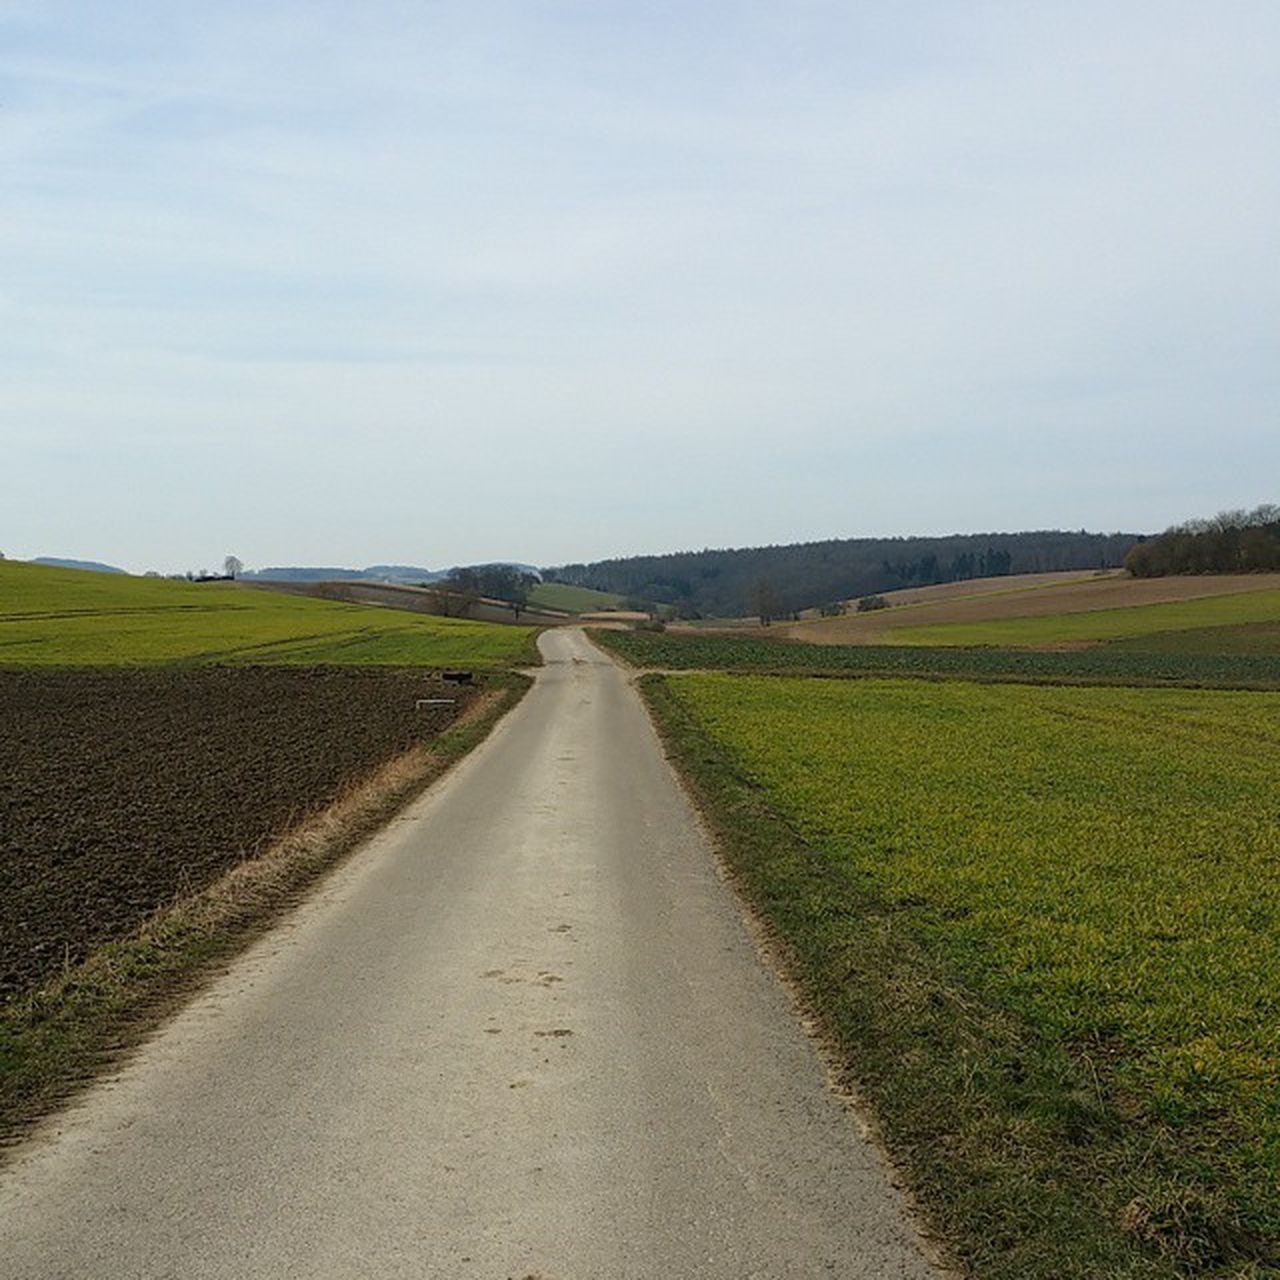 the way forward, field, day, landscape, road, no people, grass, agriculture, tranquil scene, outdoors, nature, sky, tranquility, scenics, rural scene, beauty in nature